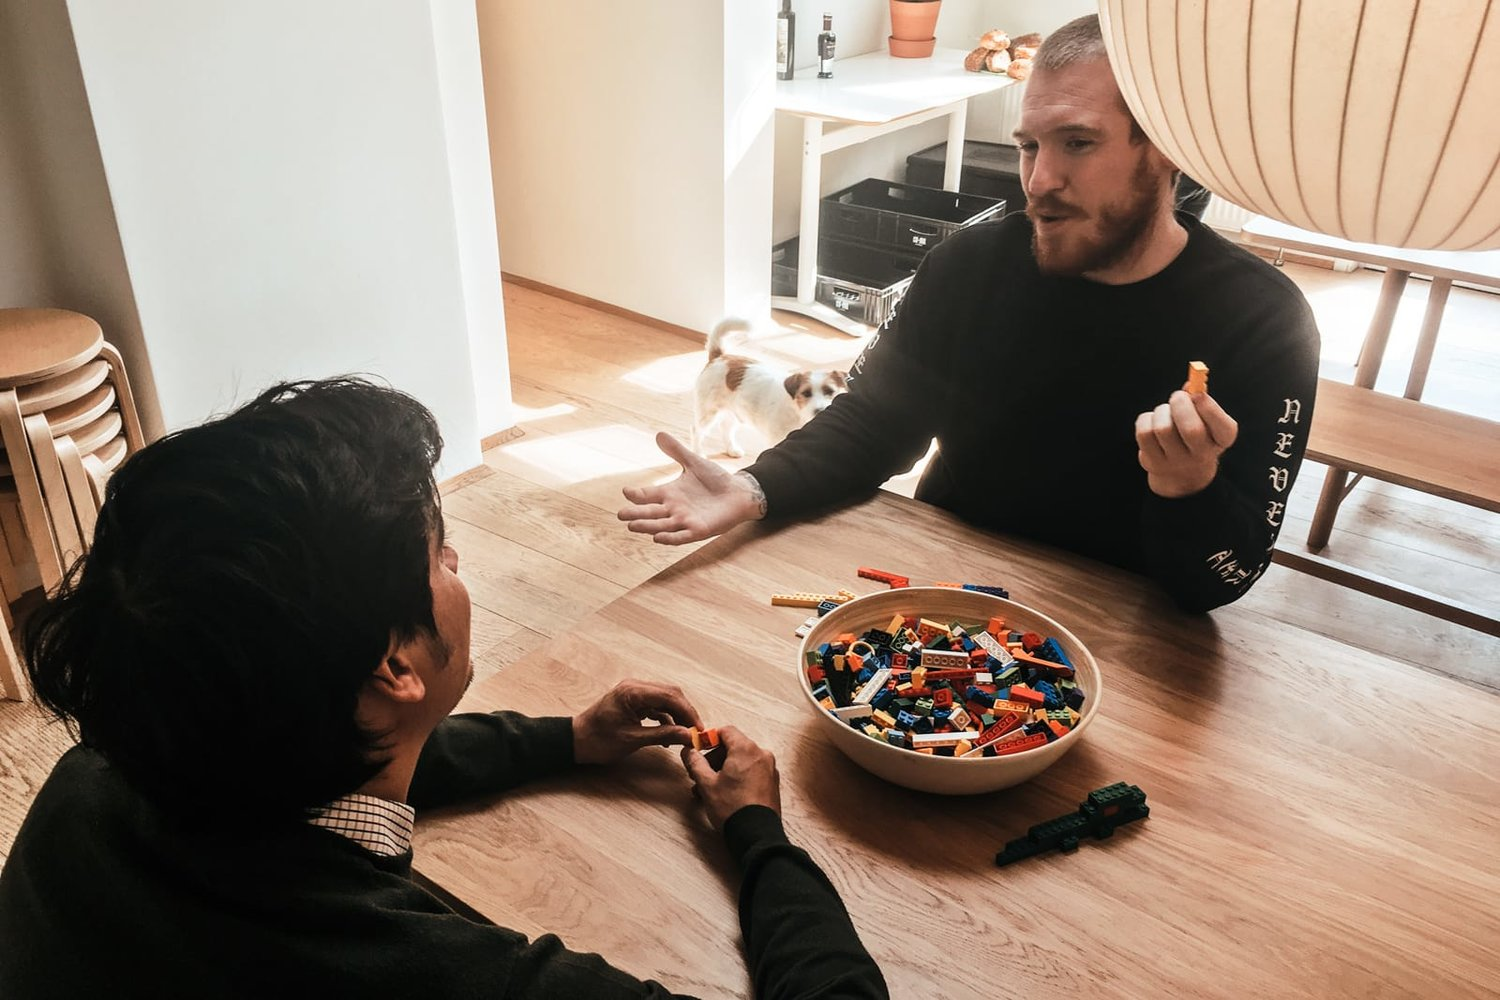 Sometimes, all you need to get people to connect is LEGO bricks.